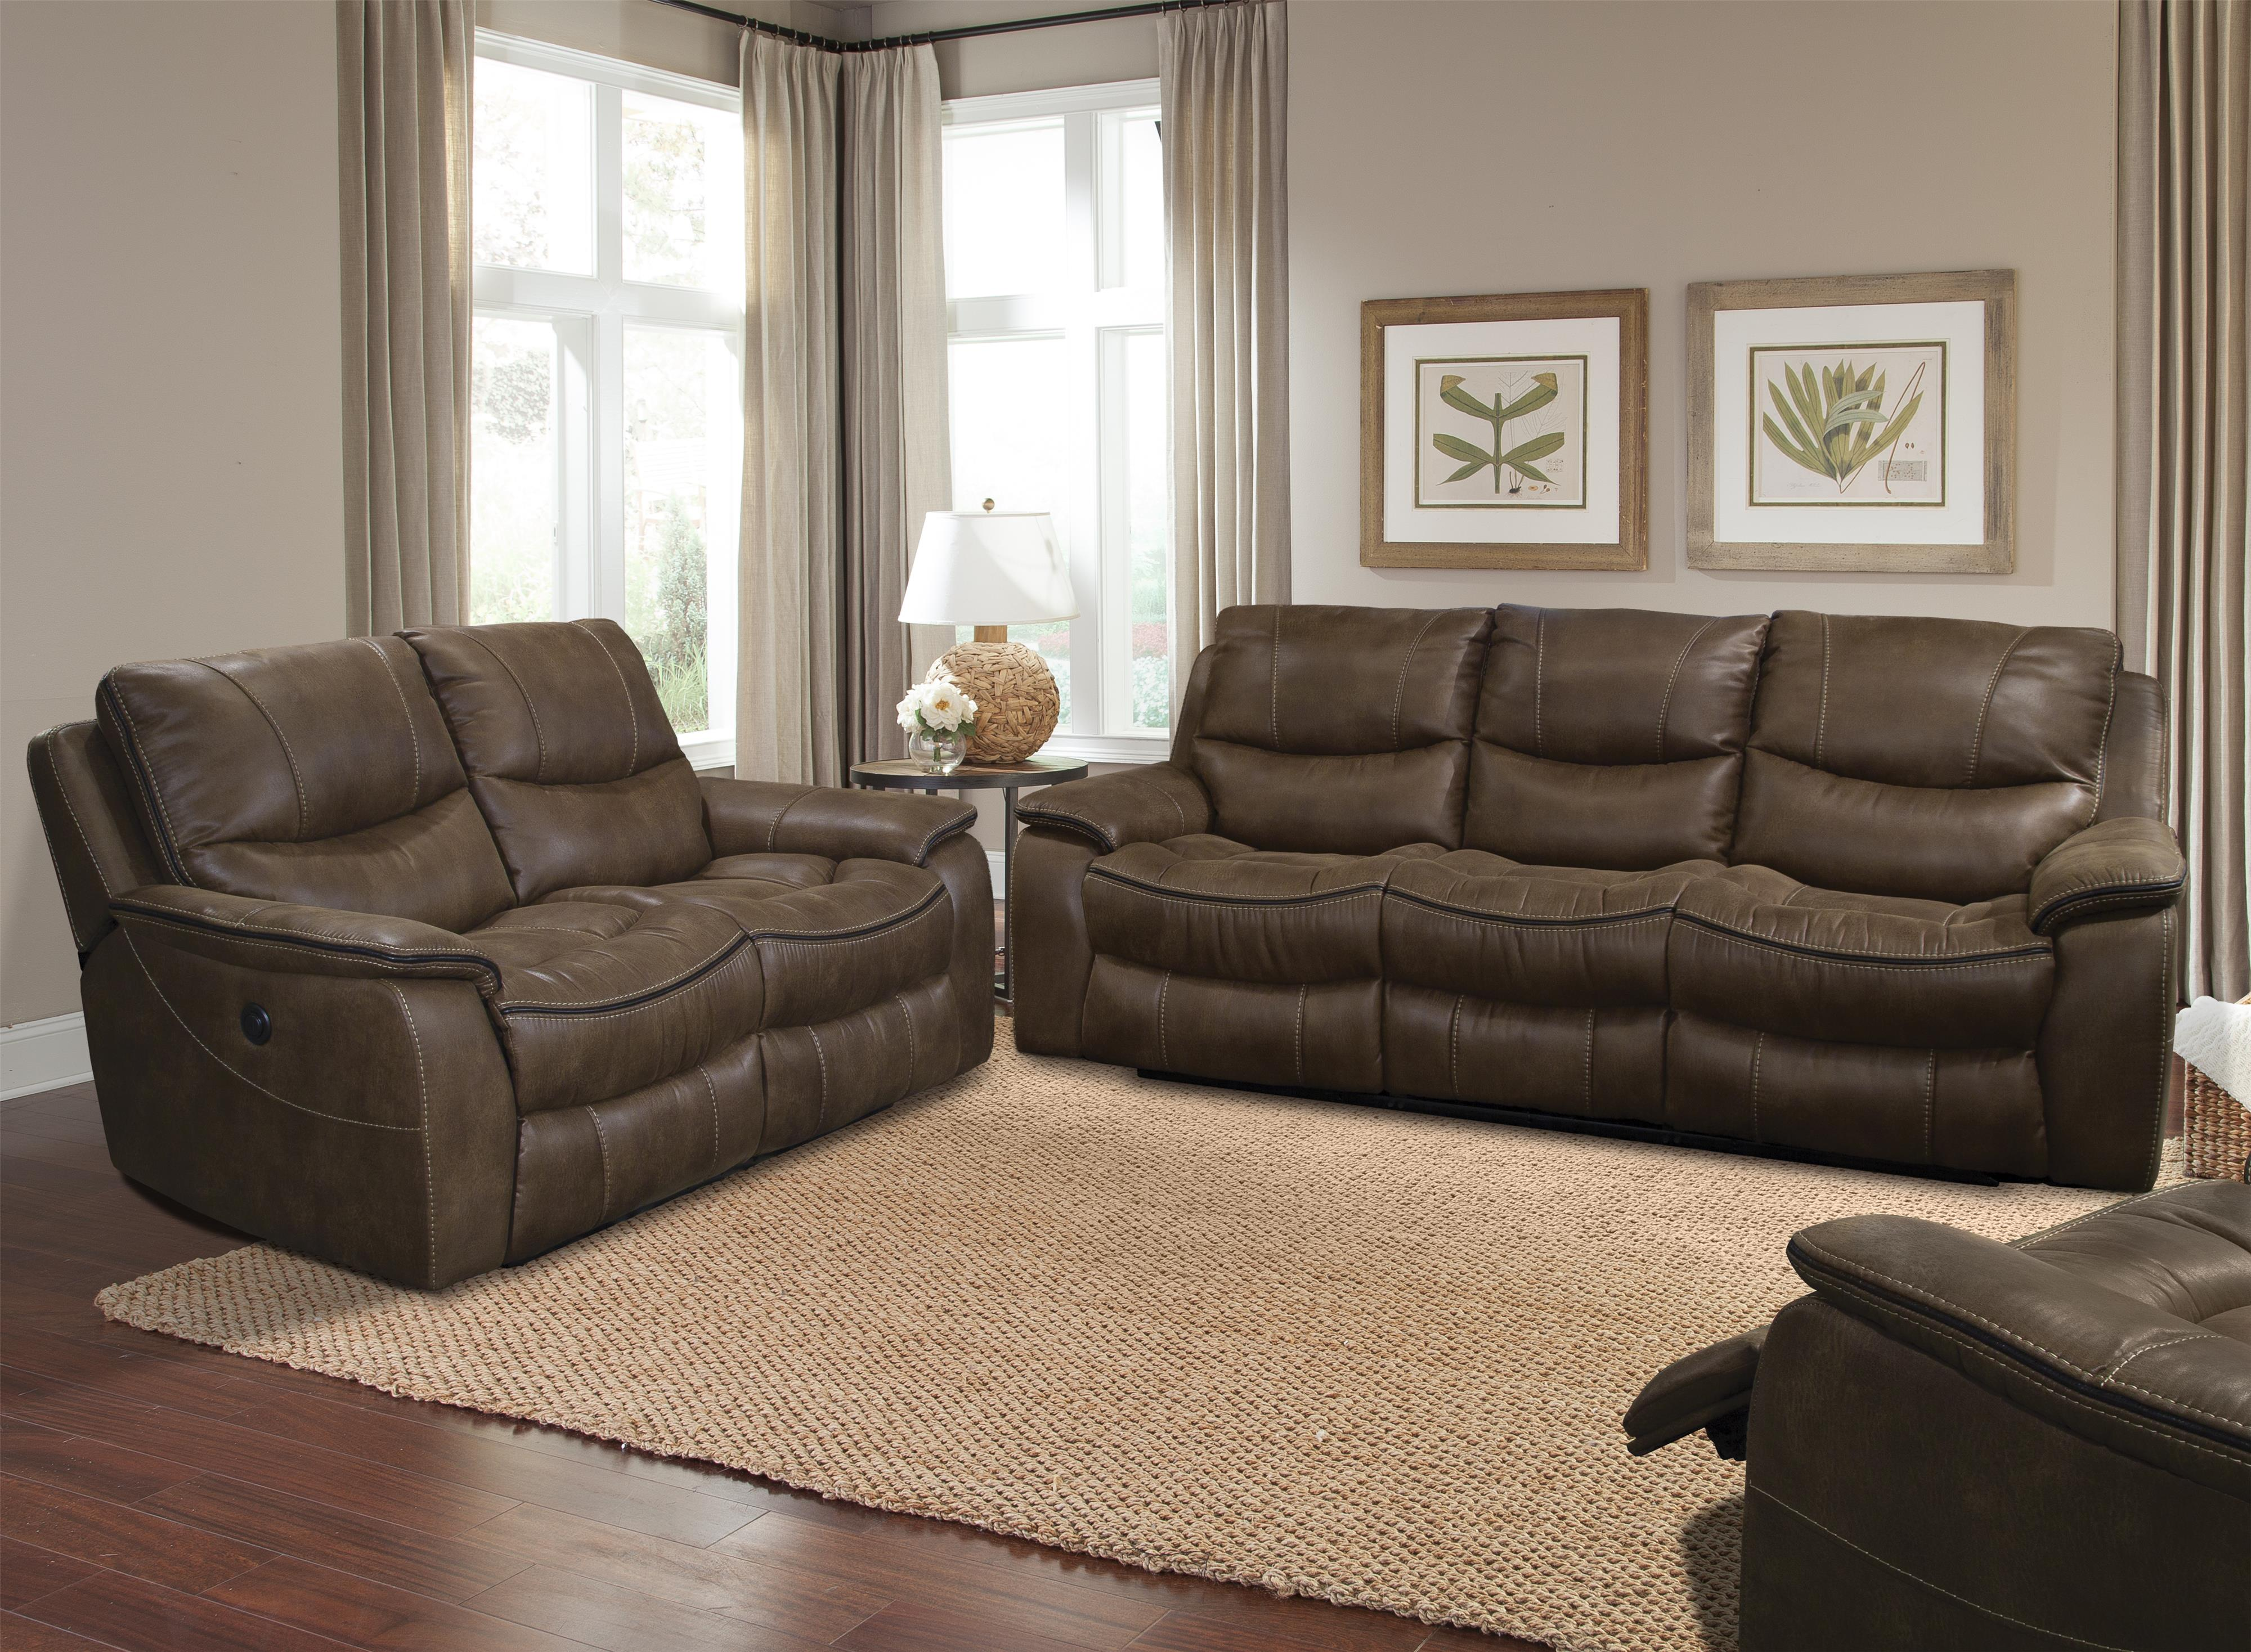 Parker Living Remus Casual Reclining Living Room Group - Item Number: MREM Reclining Living Room Group 1